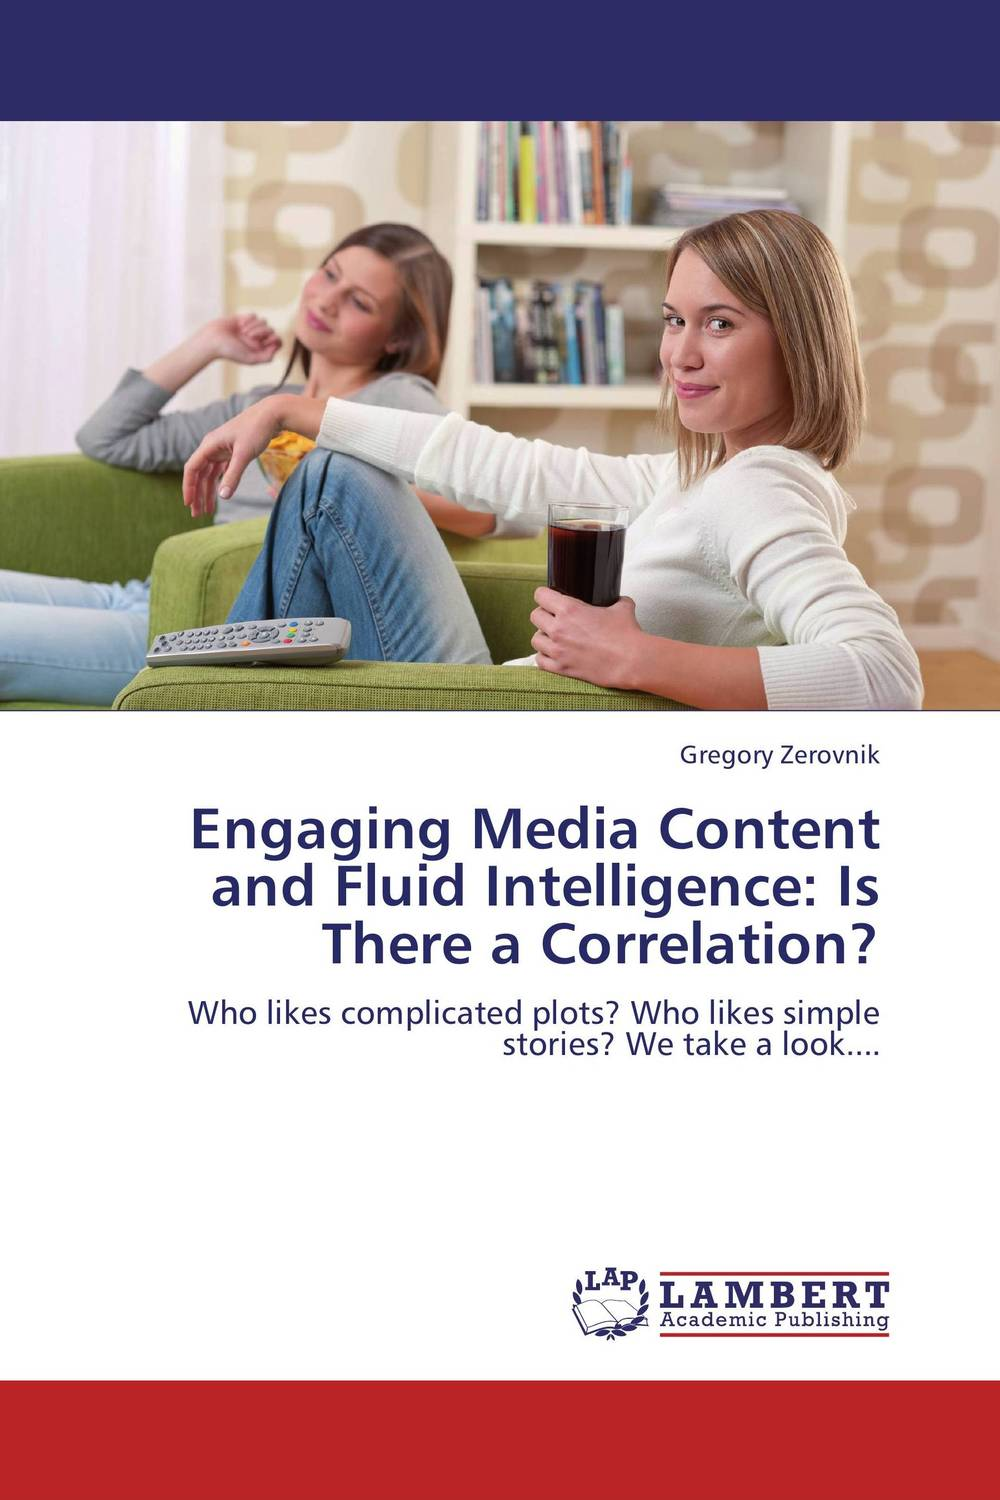 Engaging Media Content and Fluid Intelligence: Is There a Correlation? professionalising media who needs a degree to get low pay